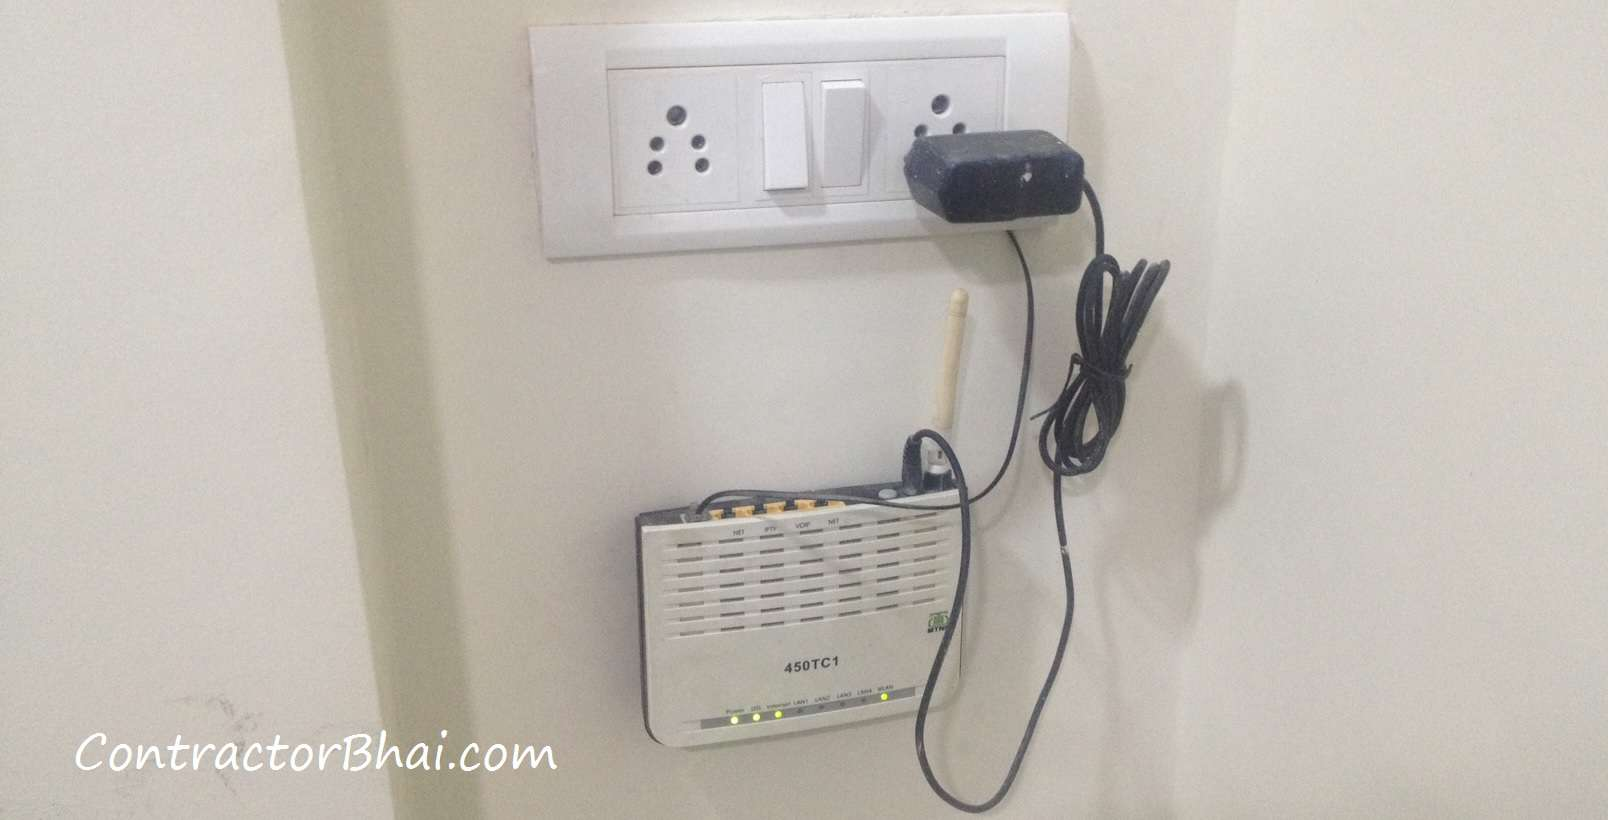 hight resolution of data cable connection wiring inside home contractorbhai home wiring internet connection